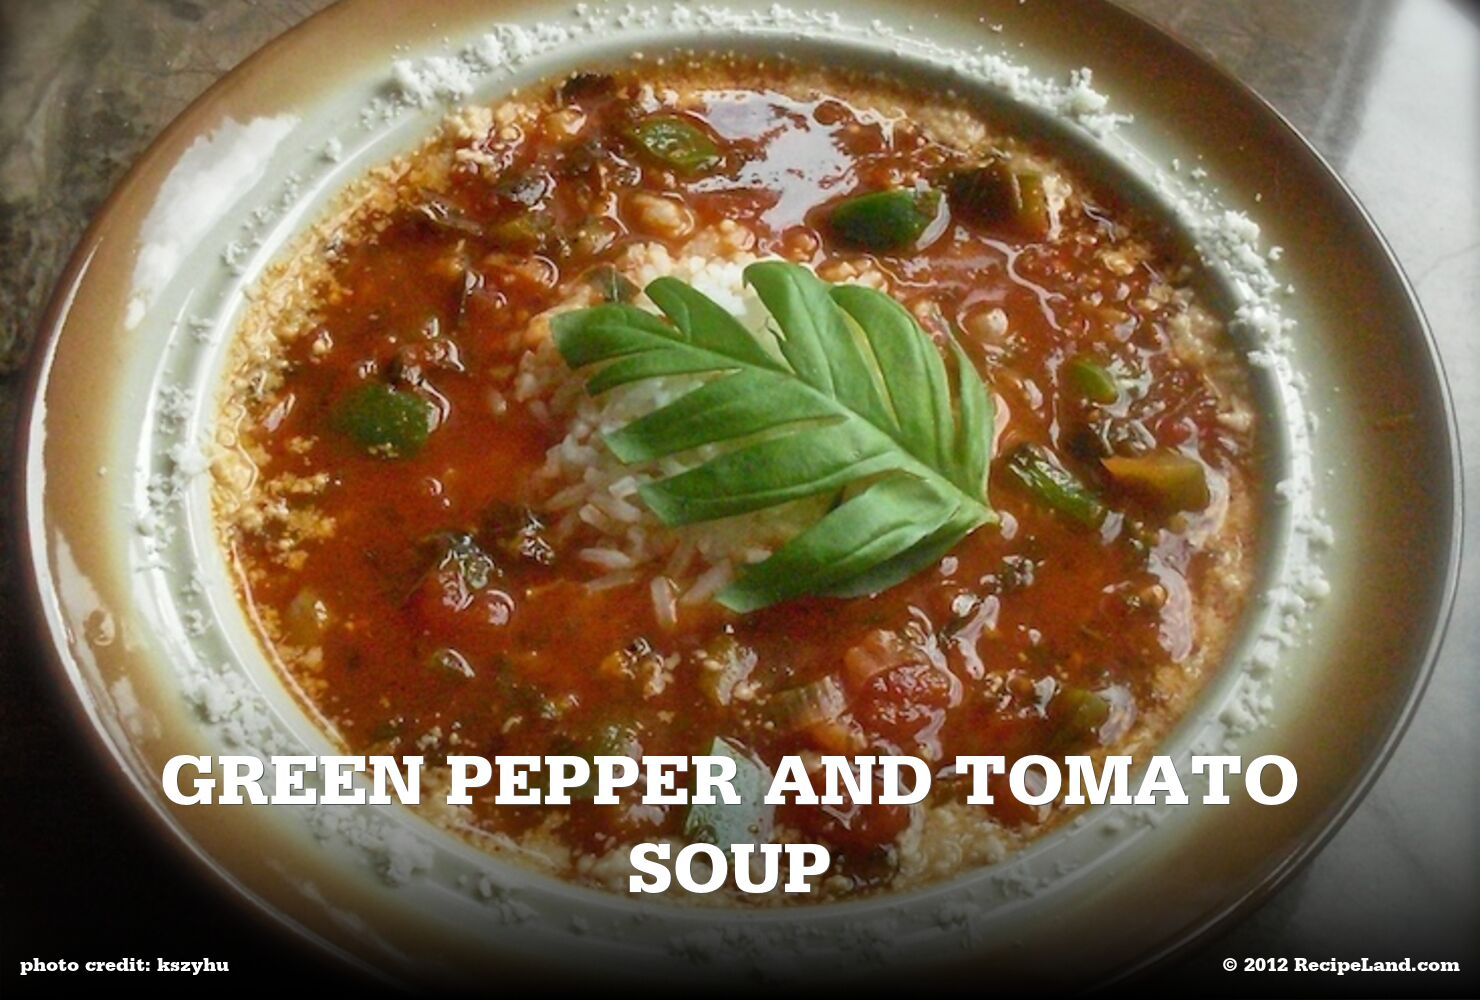 Green Pepper and Tomato Soup